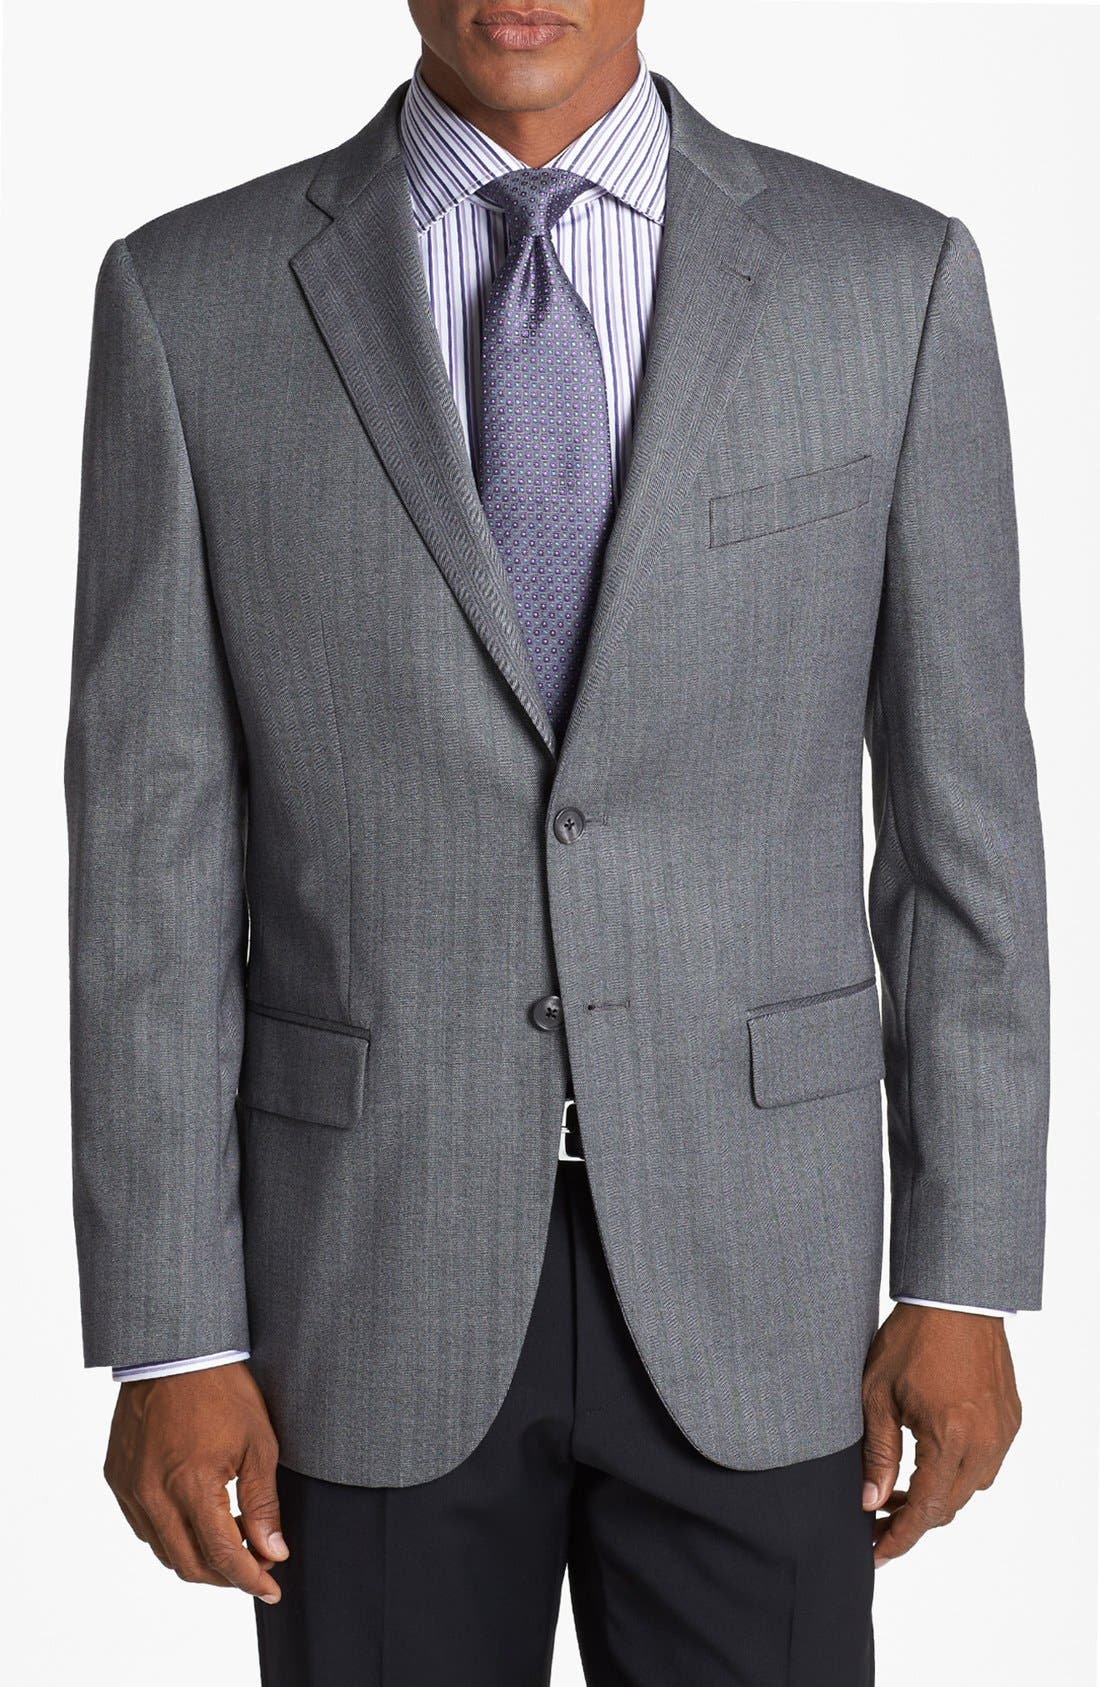 Alternate Image 1 Selected - Joseph Abboud 'Profile/Hybrid' Trim Fit Herringbone Sportcoat